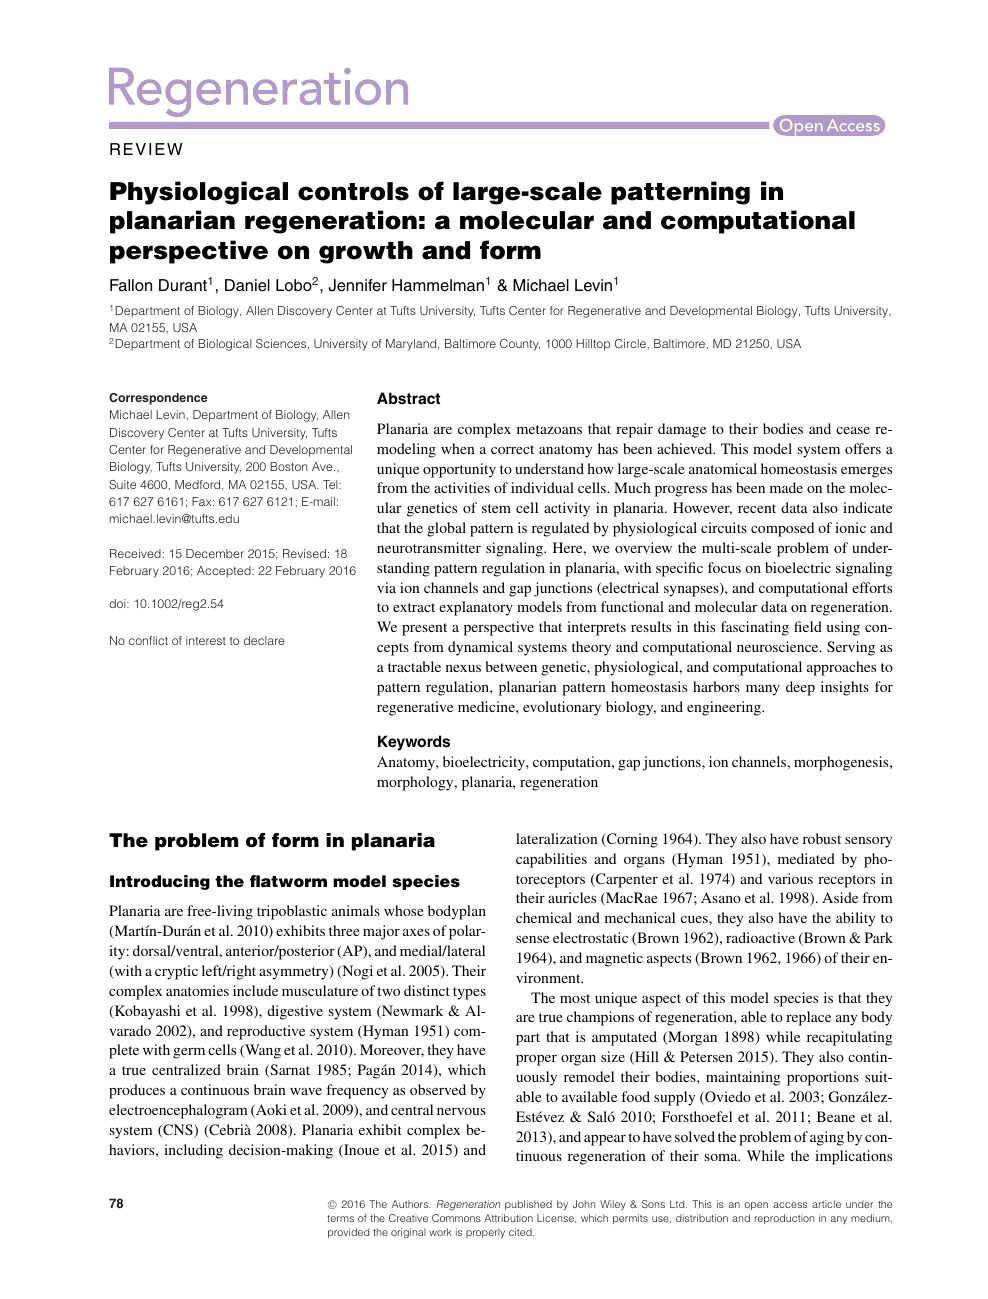 Physiological controls of large-scale patterning in